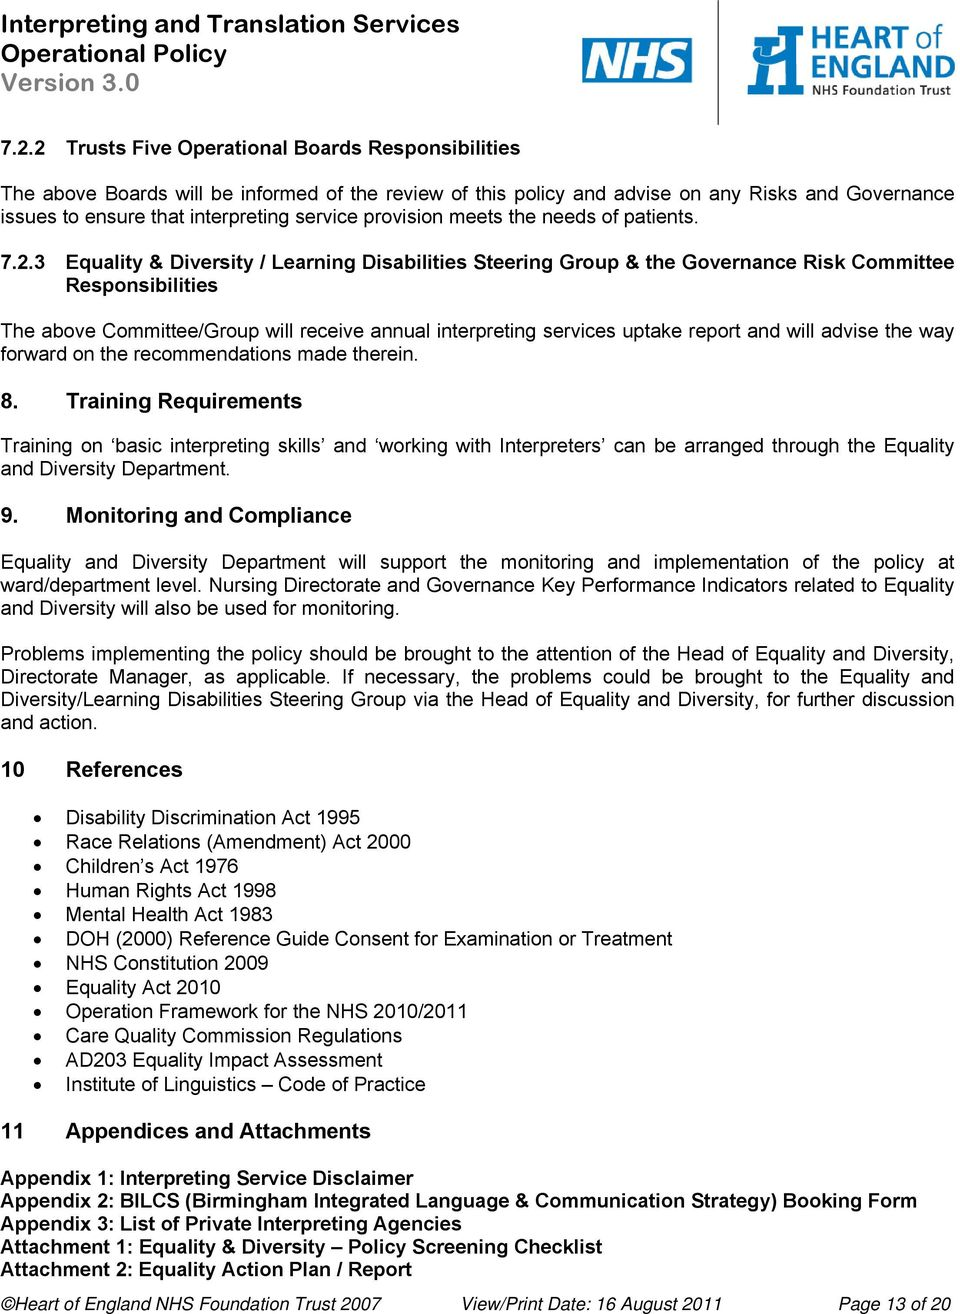 3 Equality & Diversity / Learning Disabilities Steering Group & the Governance Risk Committee Responsibilities The above Committee/Group will receive annual interpreting services uptake report and